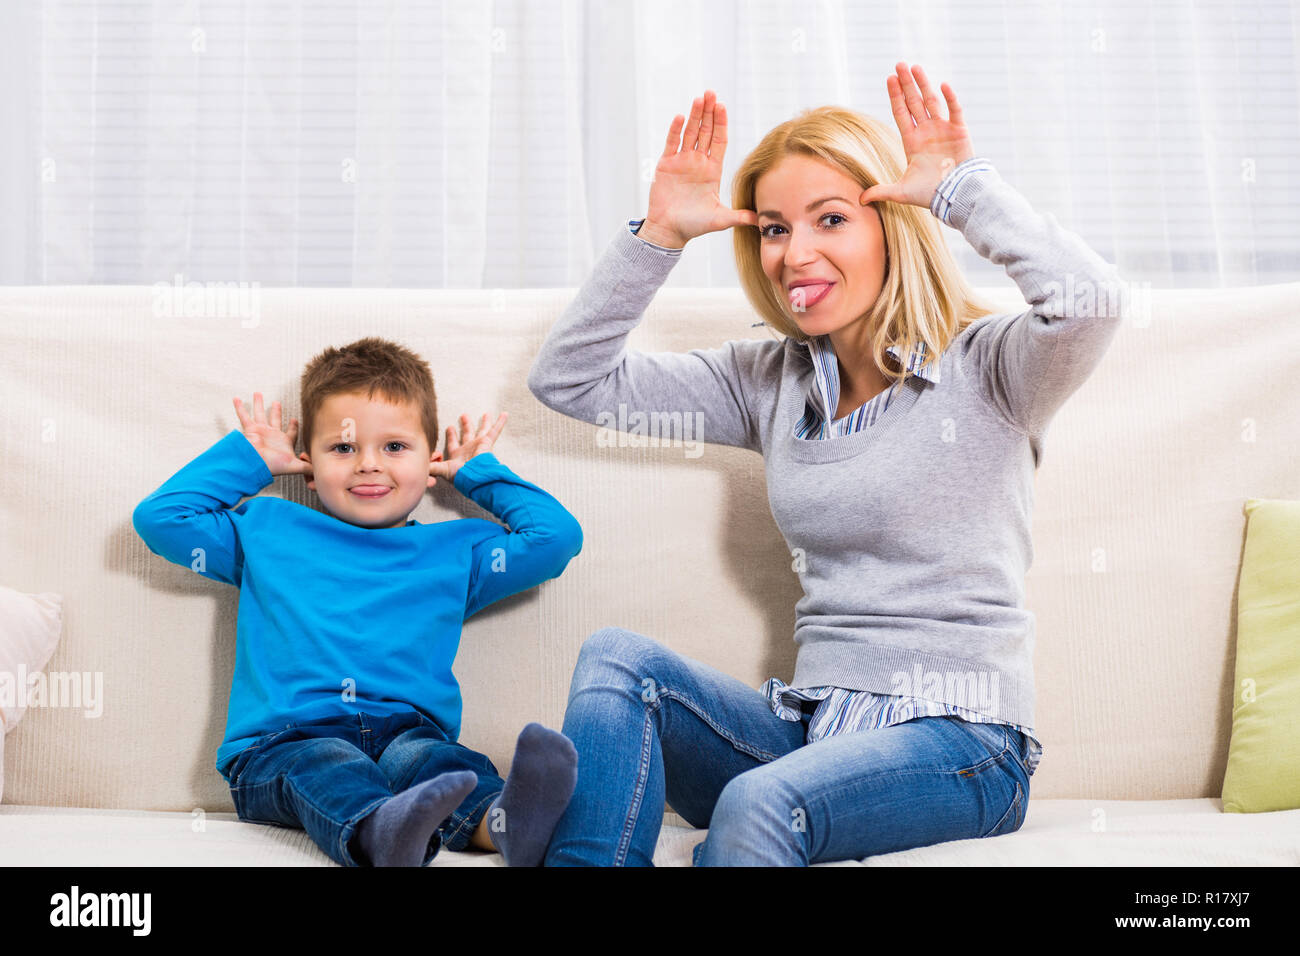 Mother and son are sitting on sofa and sticking out tounge. - Stock Image